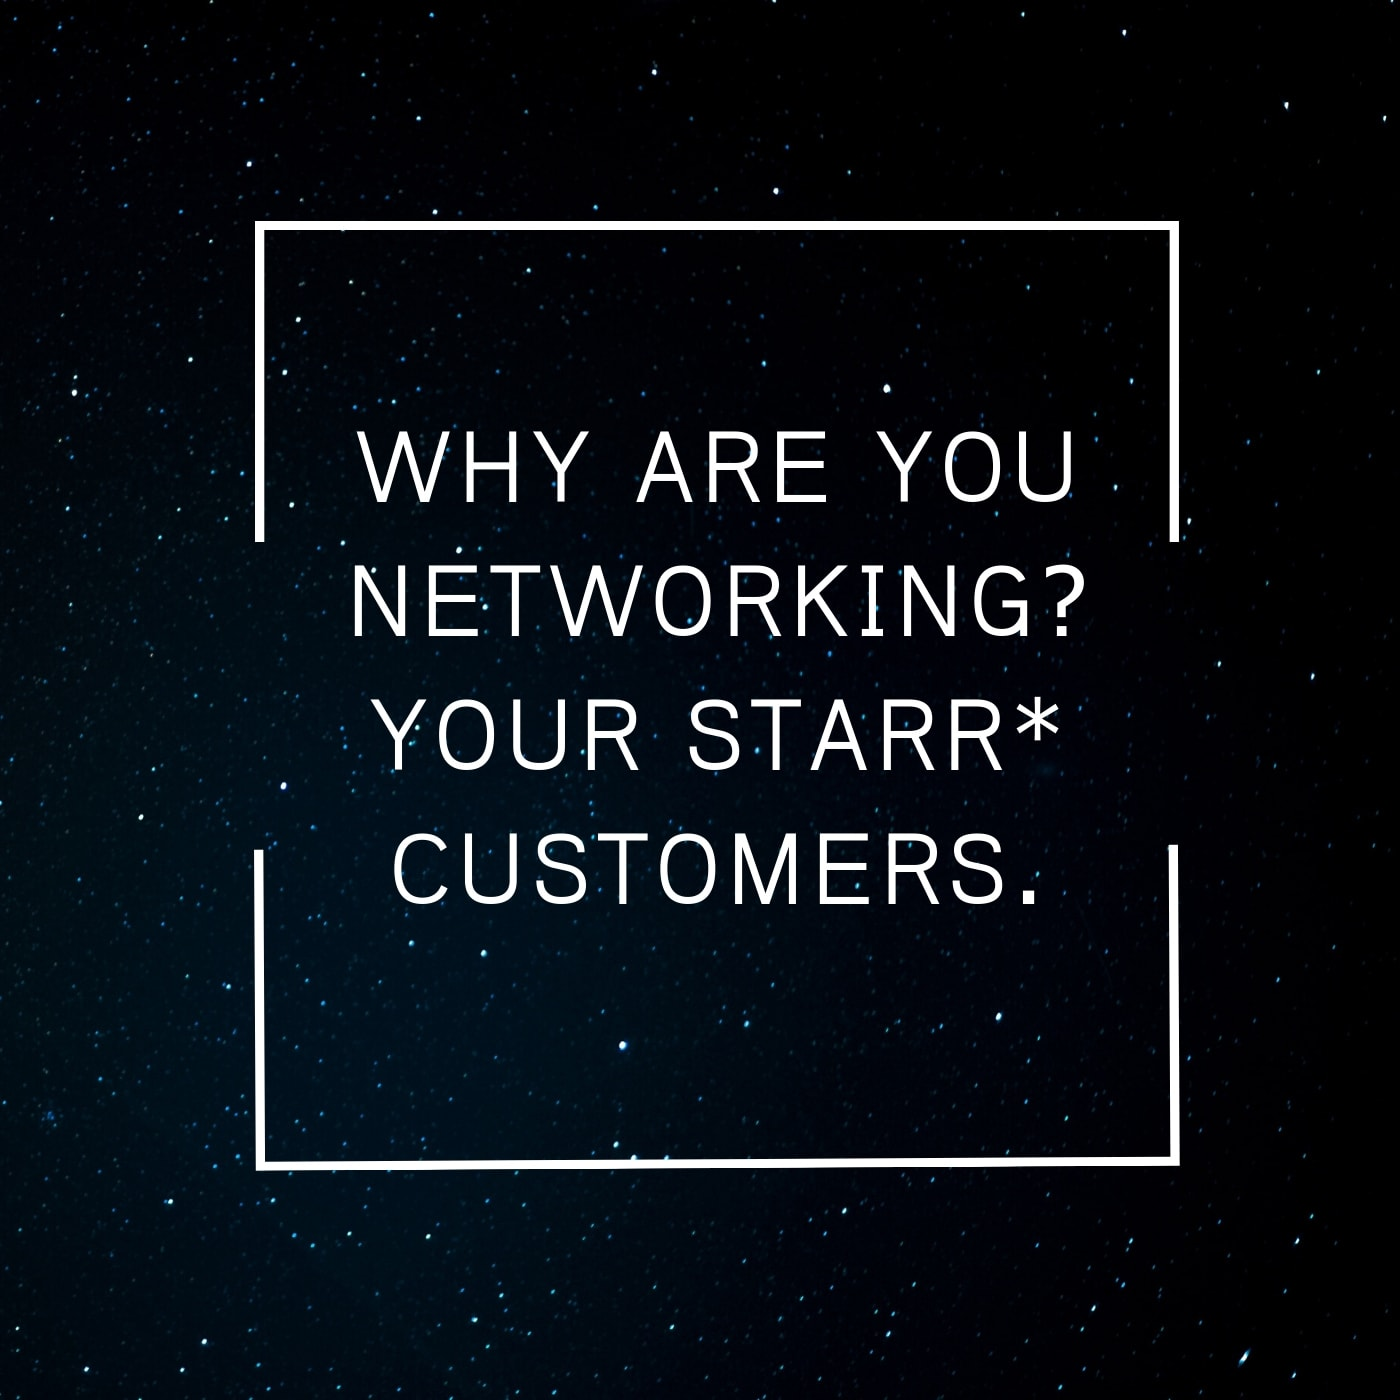 Business networking - who are your STARR customers?